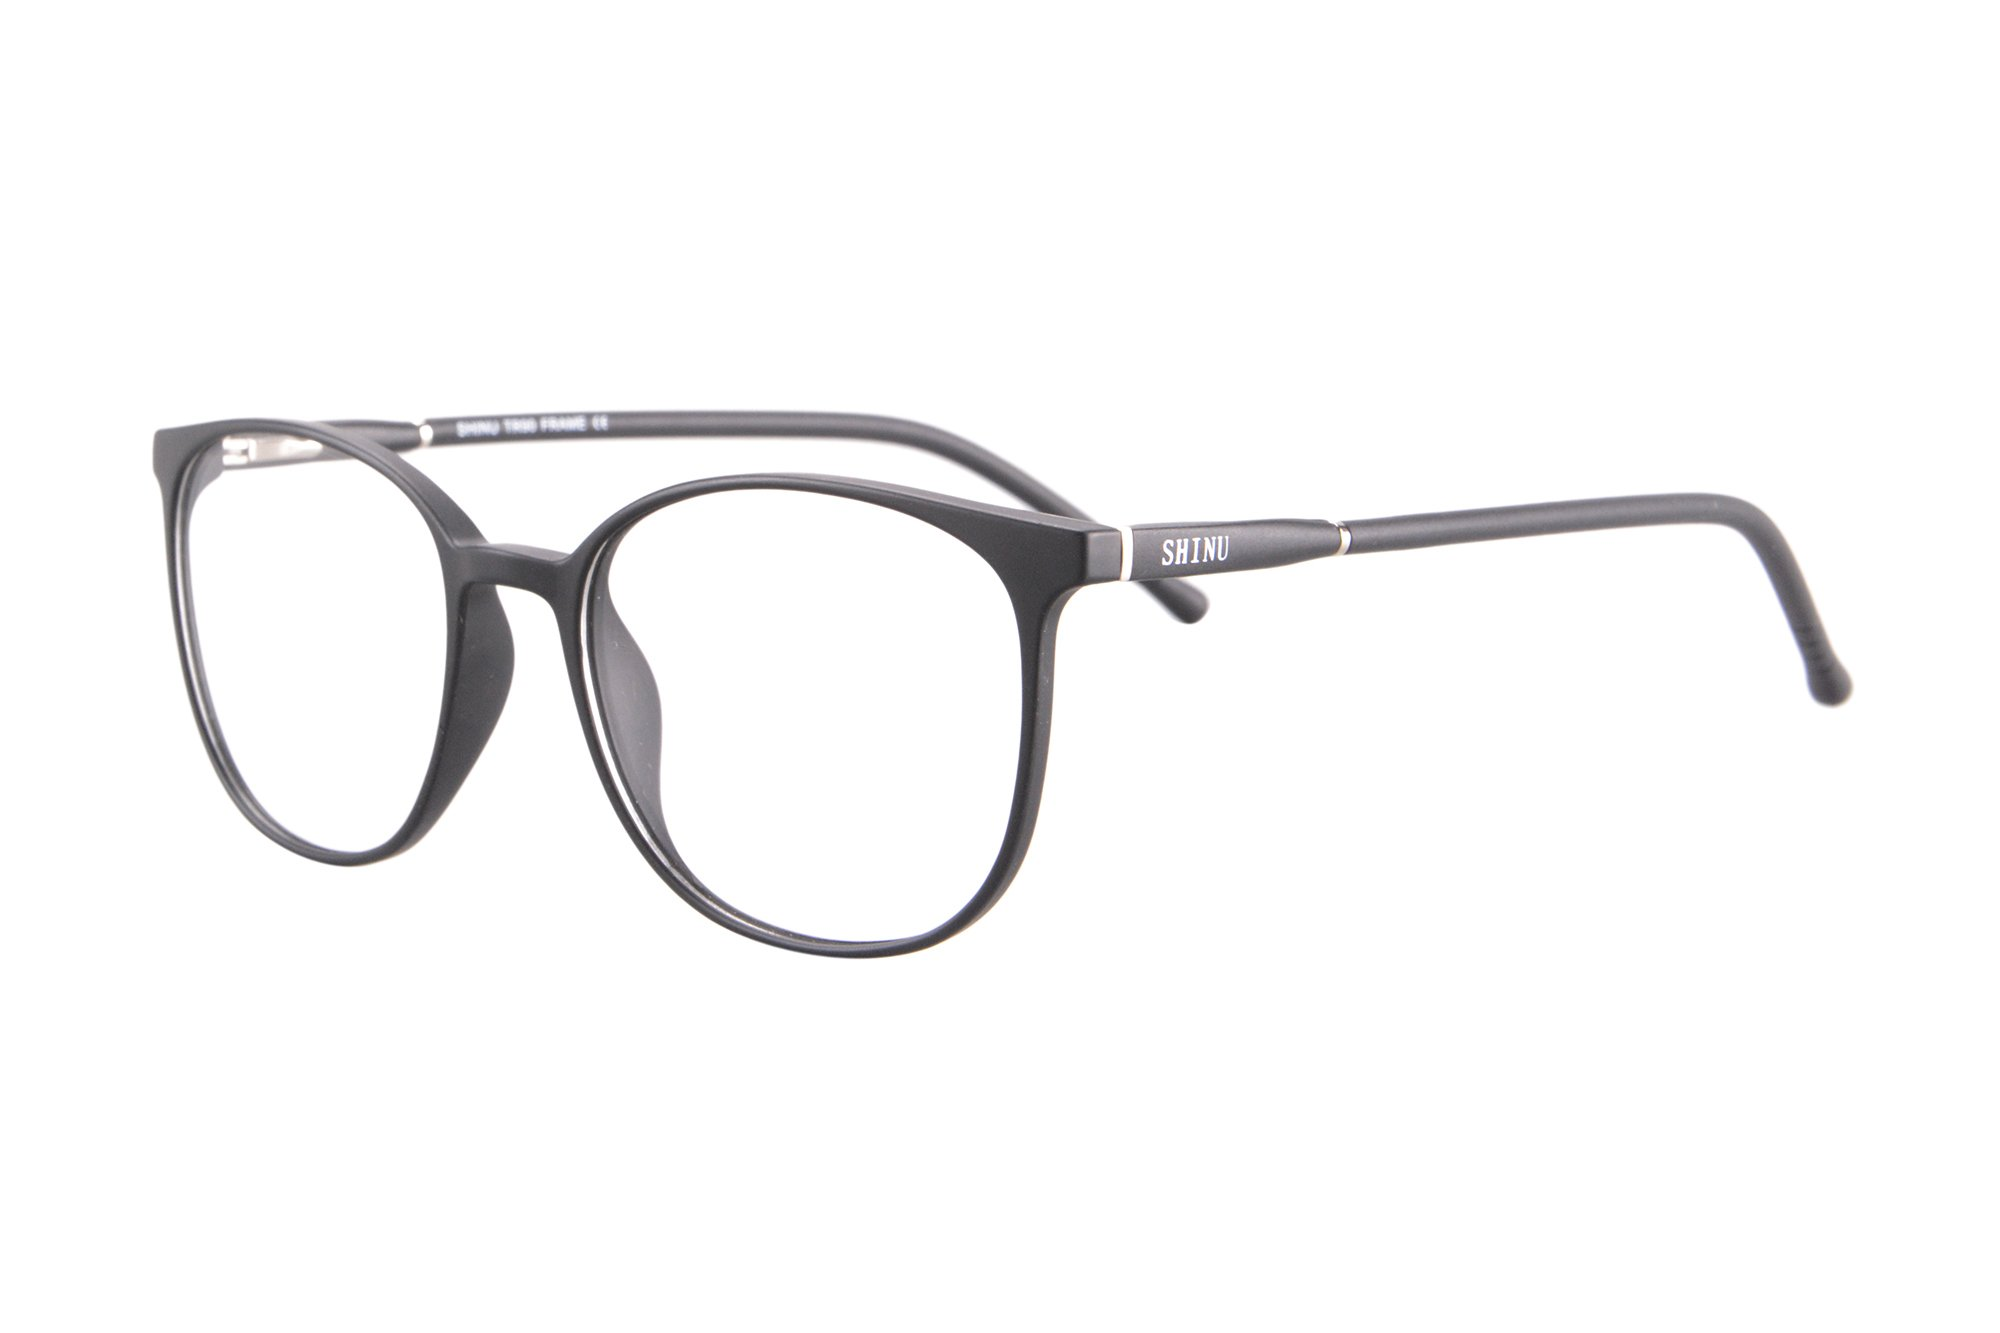 SHINU TR90 Lightweight Frame Progressive Multifocus Reading Glasses-SH079